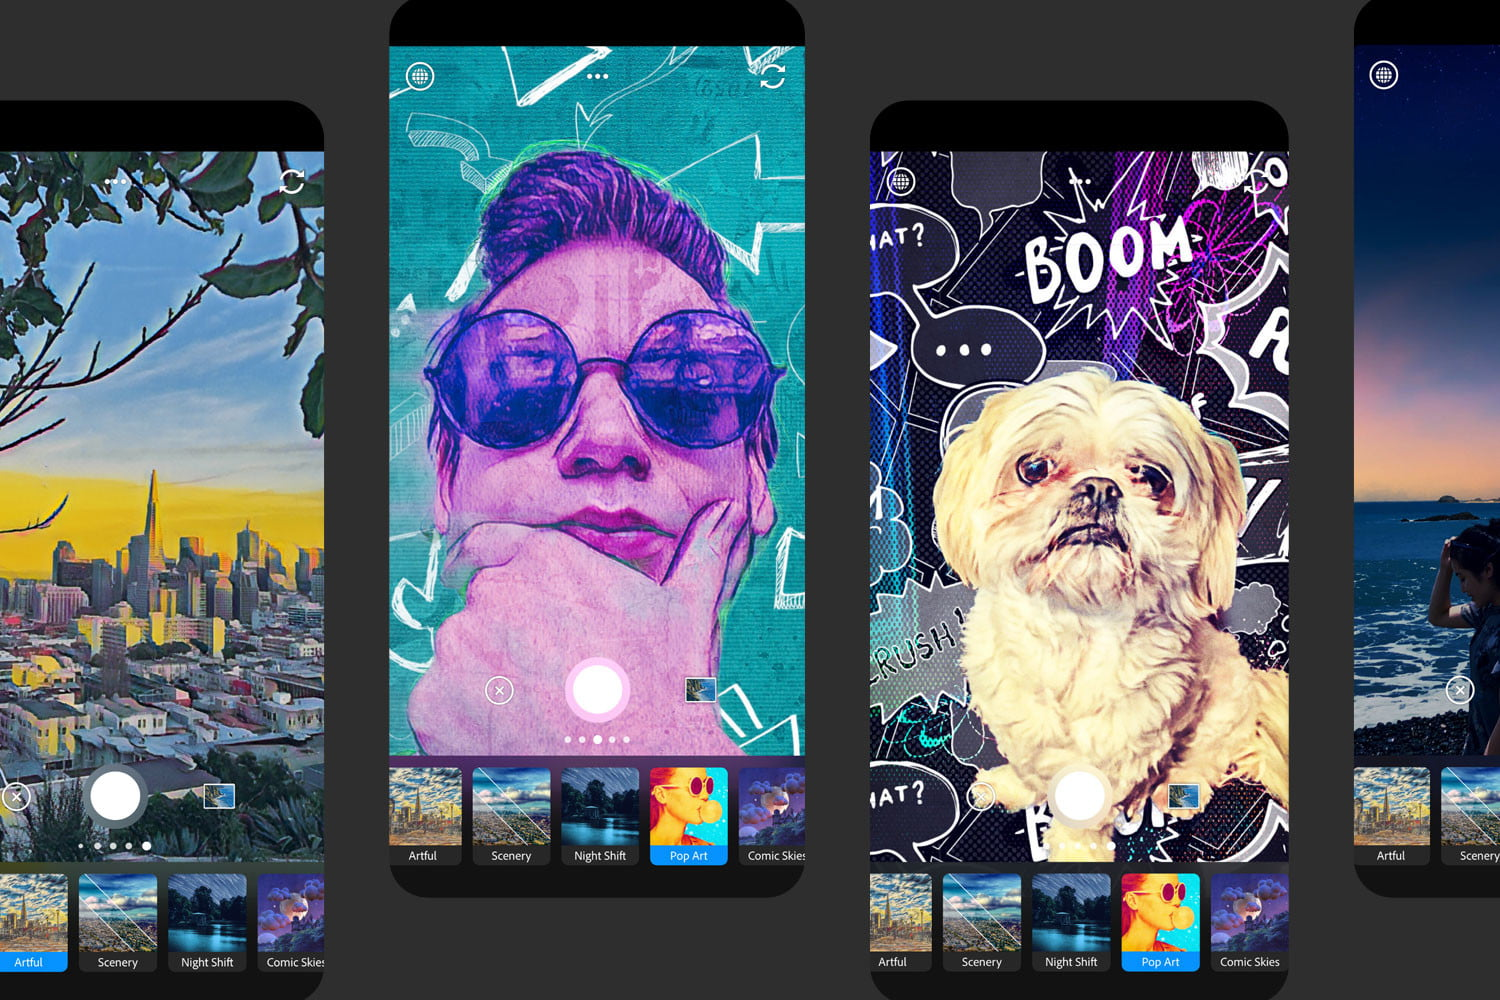 Adobe Photoshop Camera: Will This App Revolutionize Mobile Editing ...